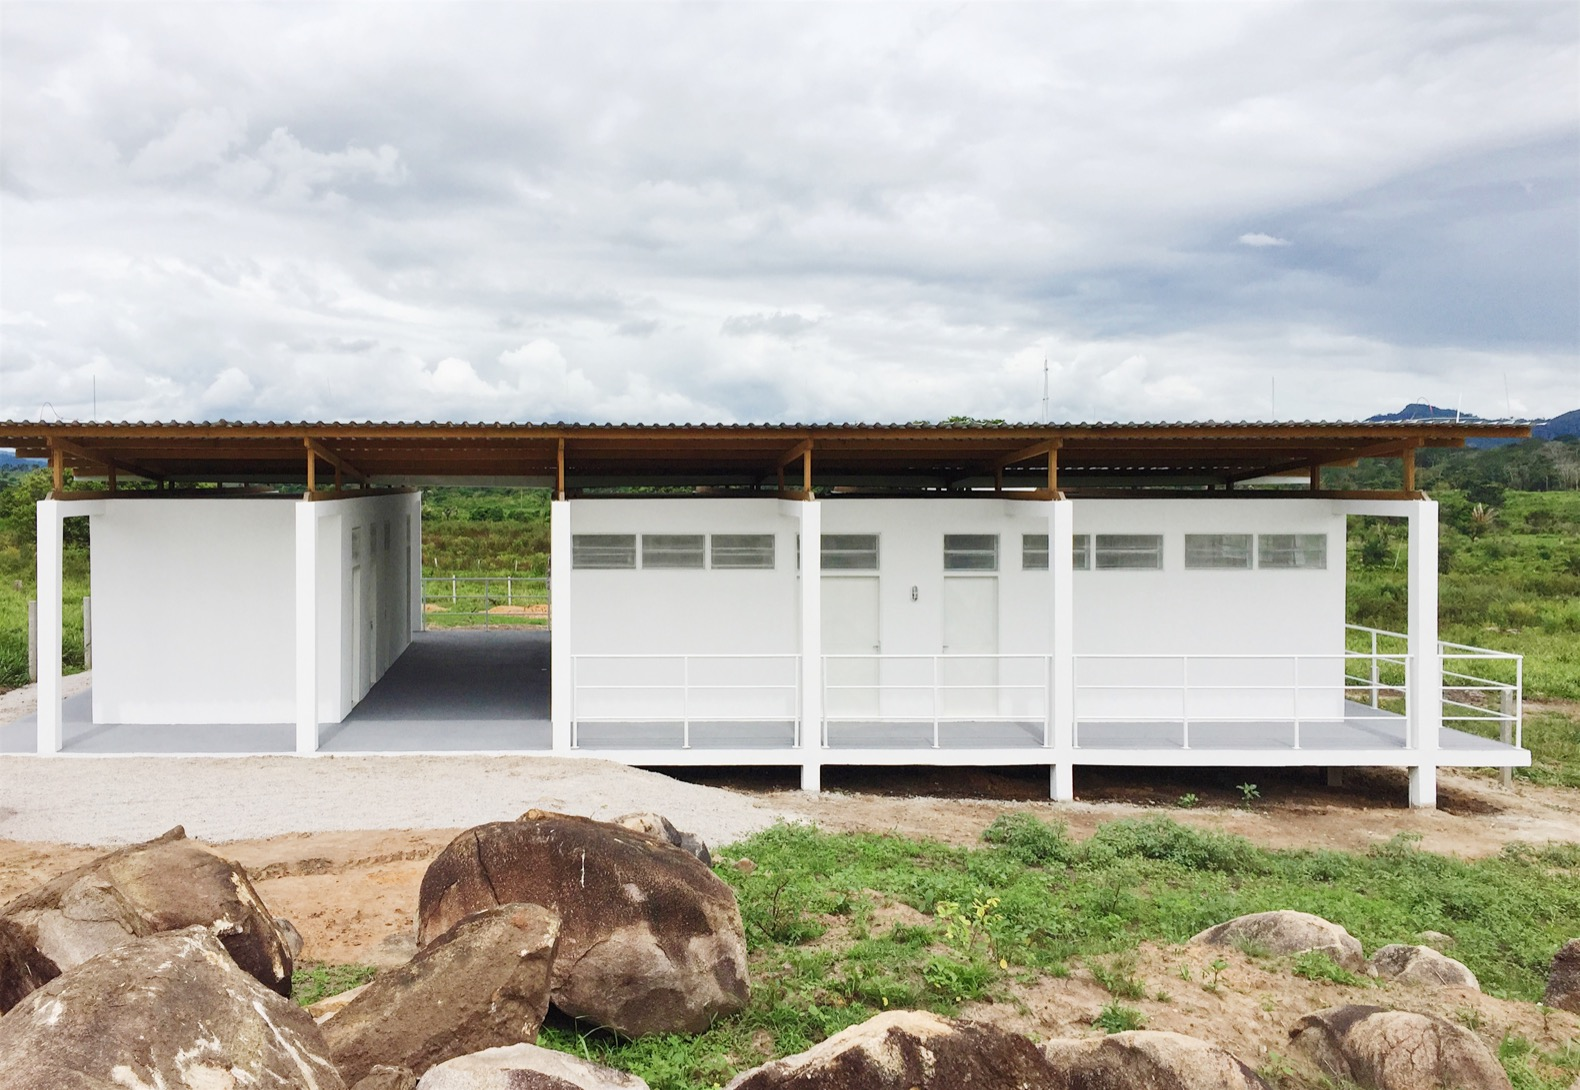 This beekeepers workshop uses sustainable design to minimize its footprint